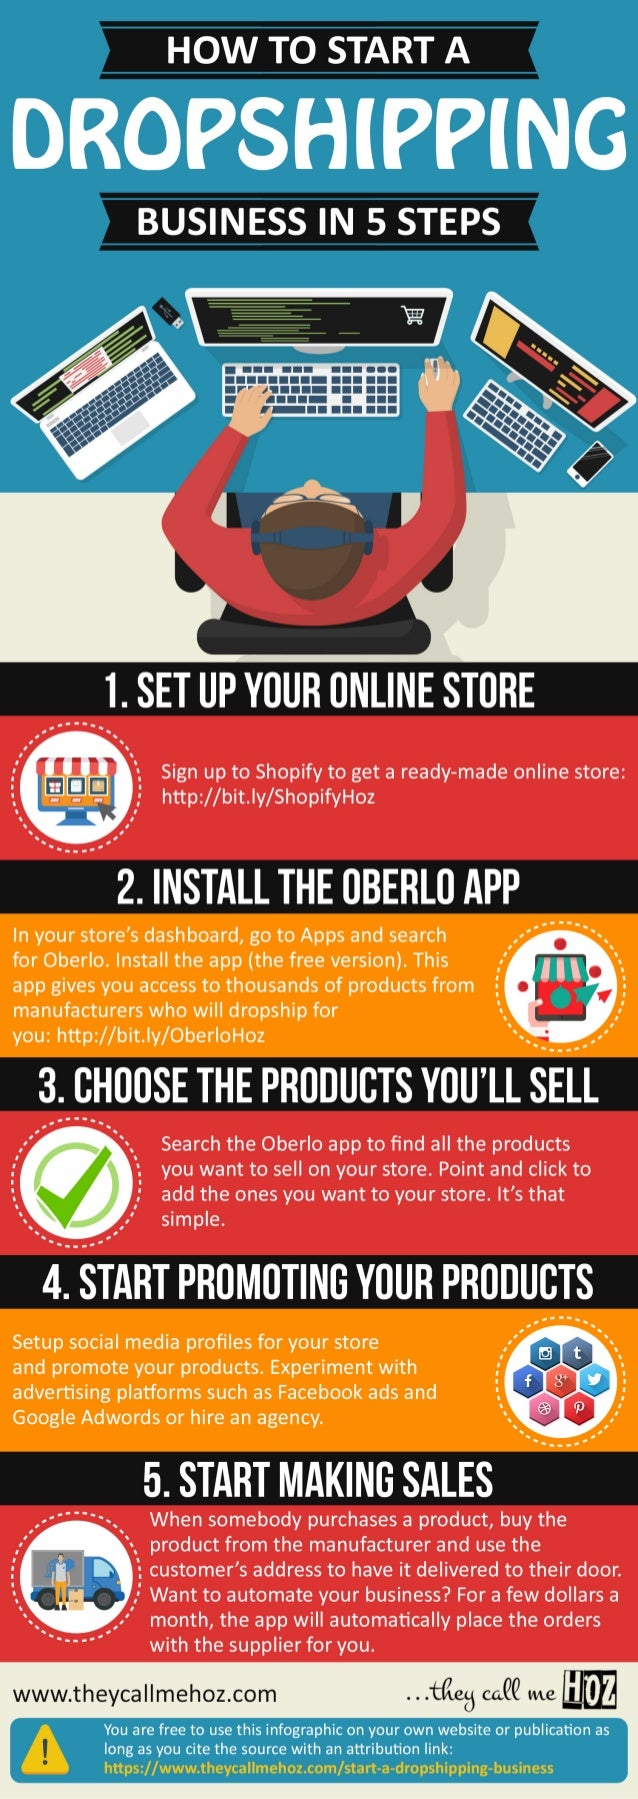 How to Start a Dropshipping Business in 5 Steps Infographic